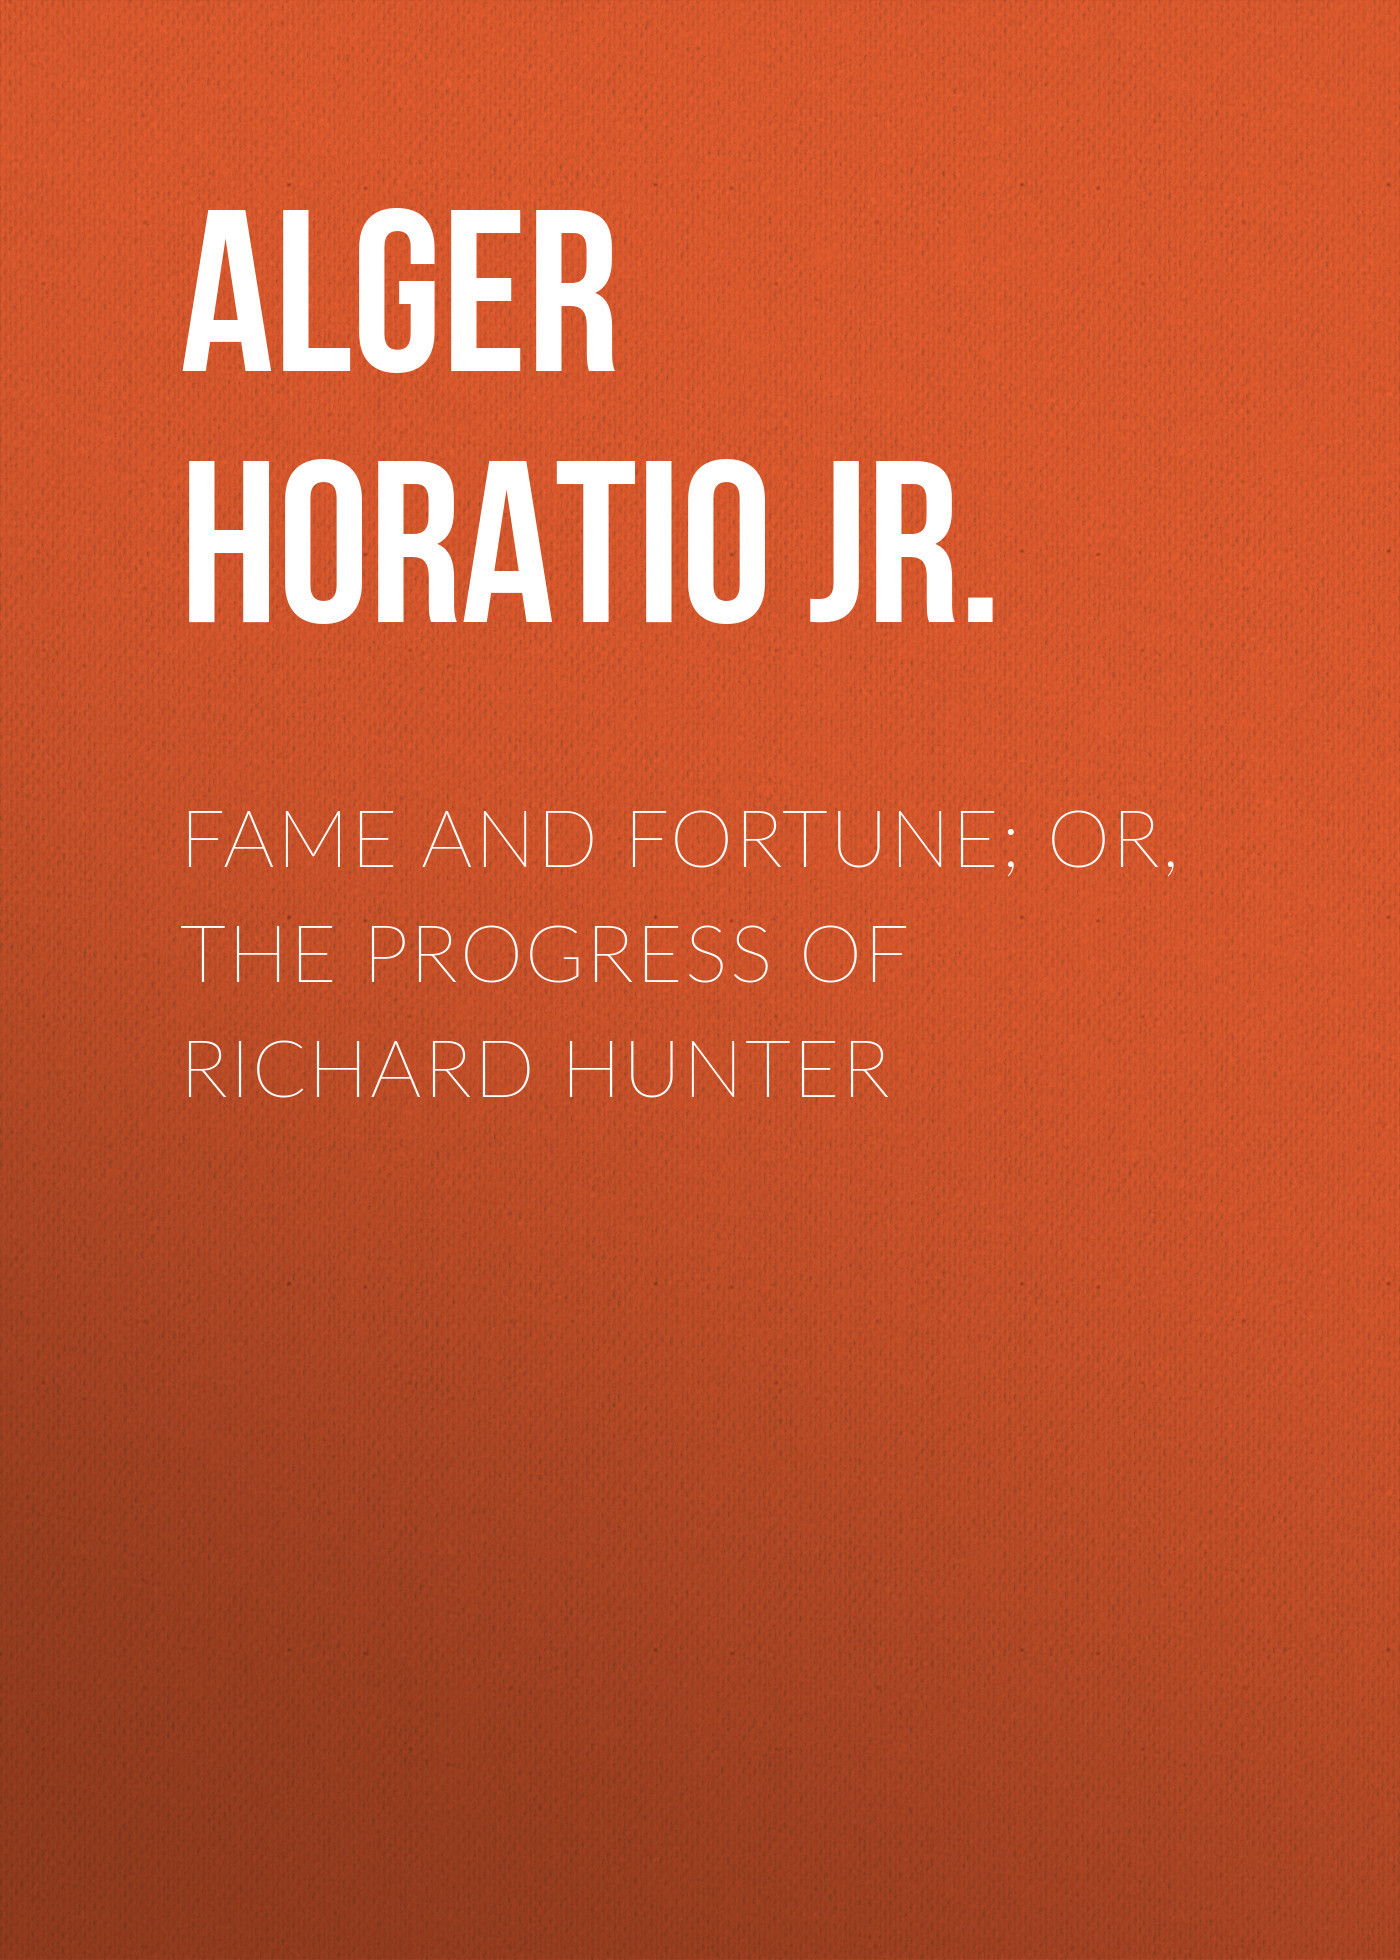 Alger Horatio Jr. Fame and Fortune; or, The Progress of Richard Hunter turtleneck pure color long sleeve dress for women